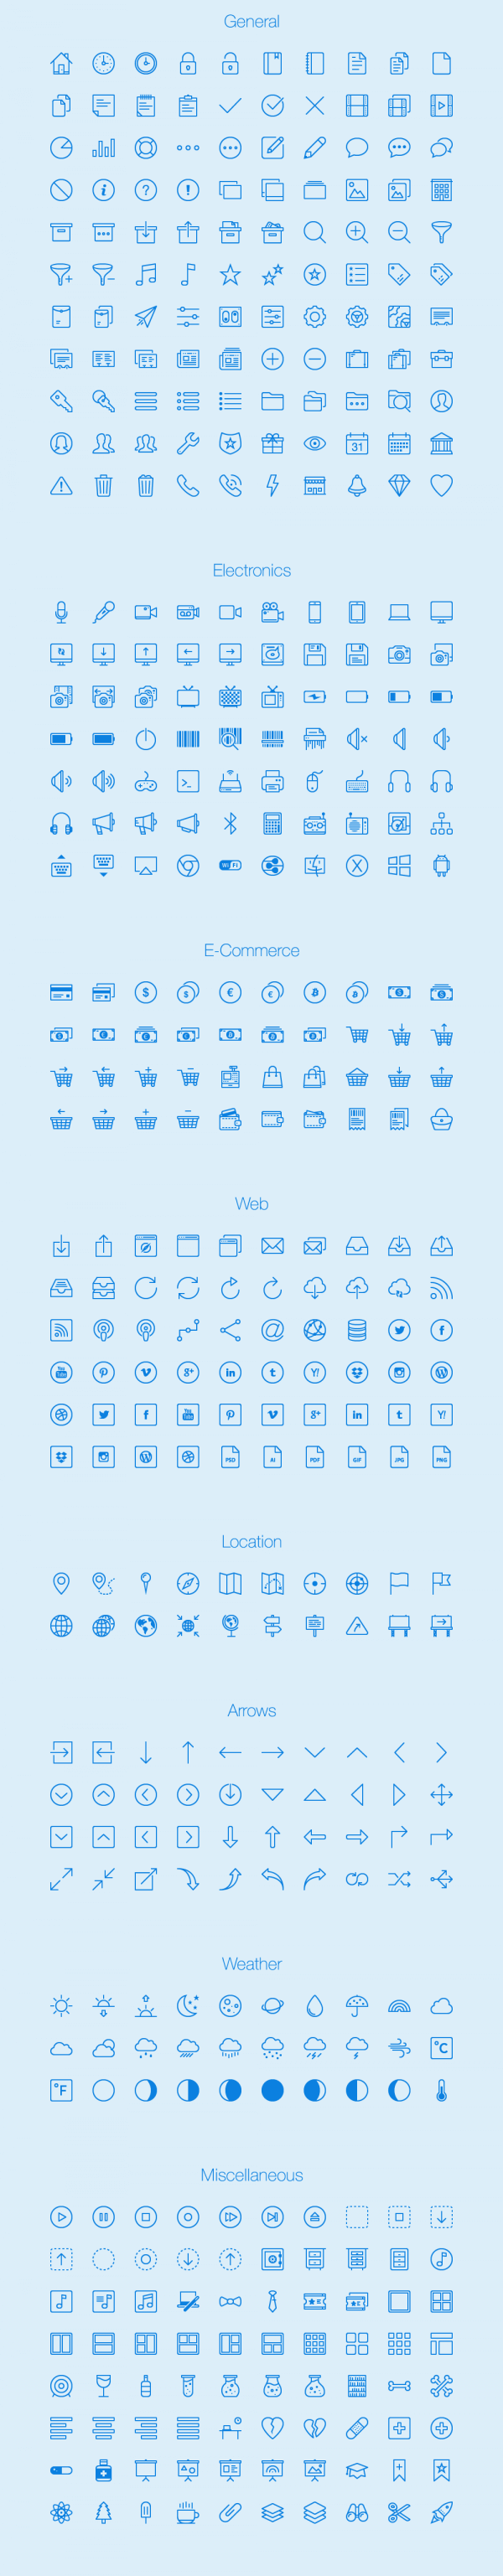 Lynny Icons - Full vector